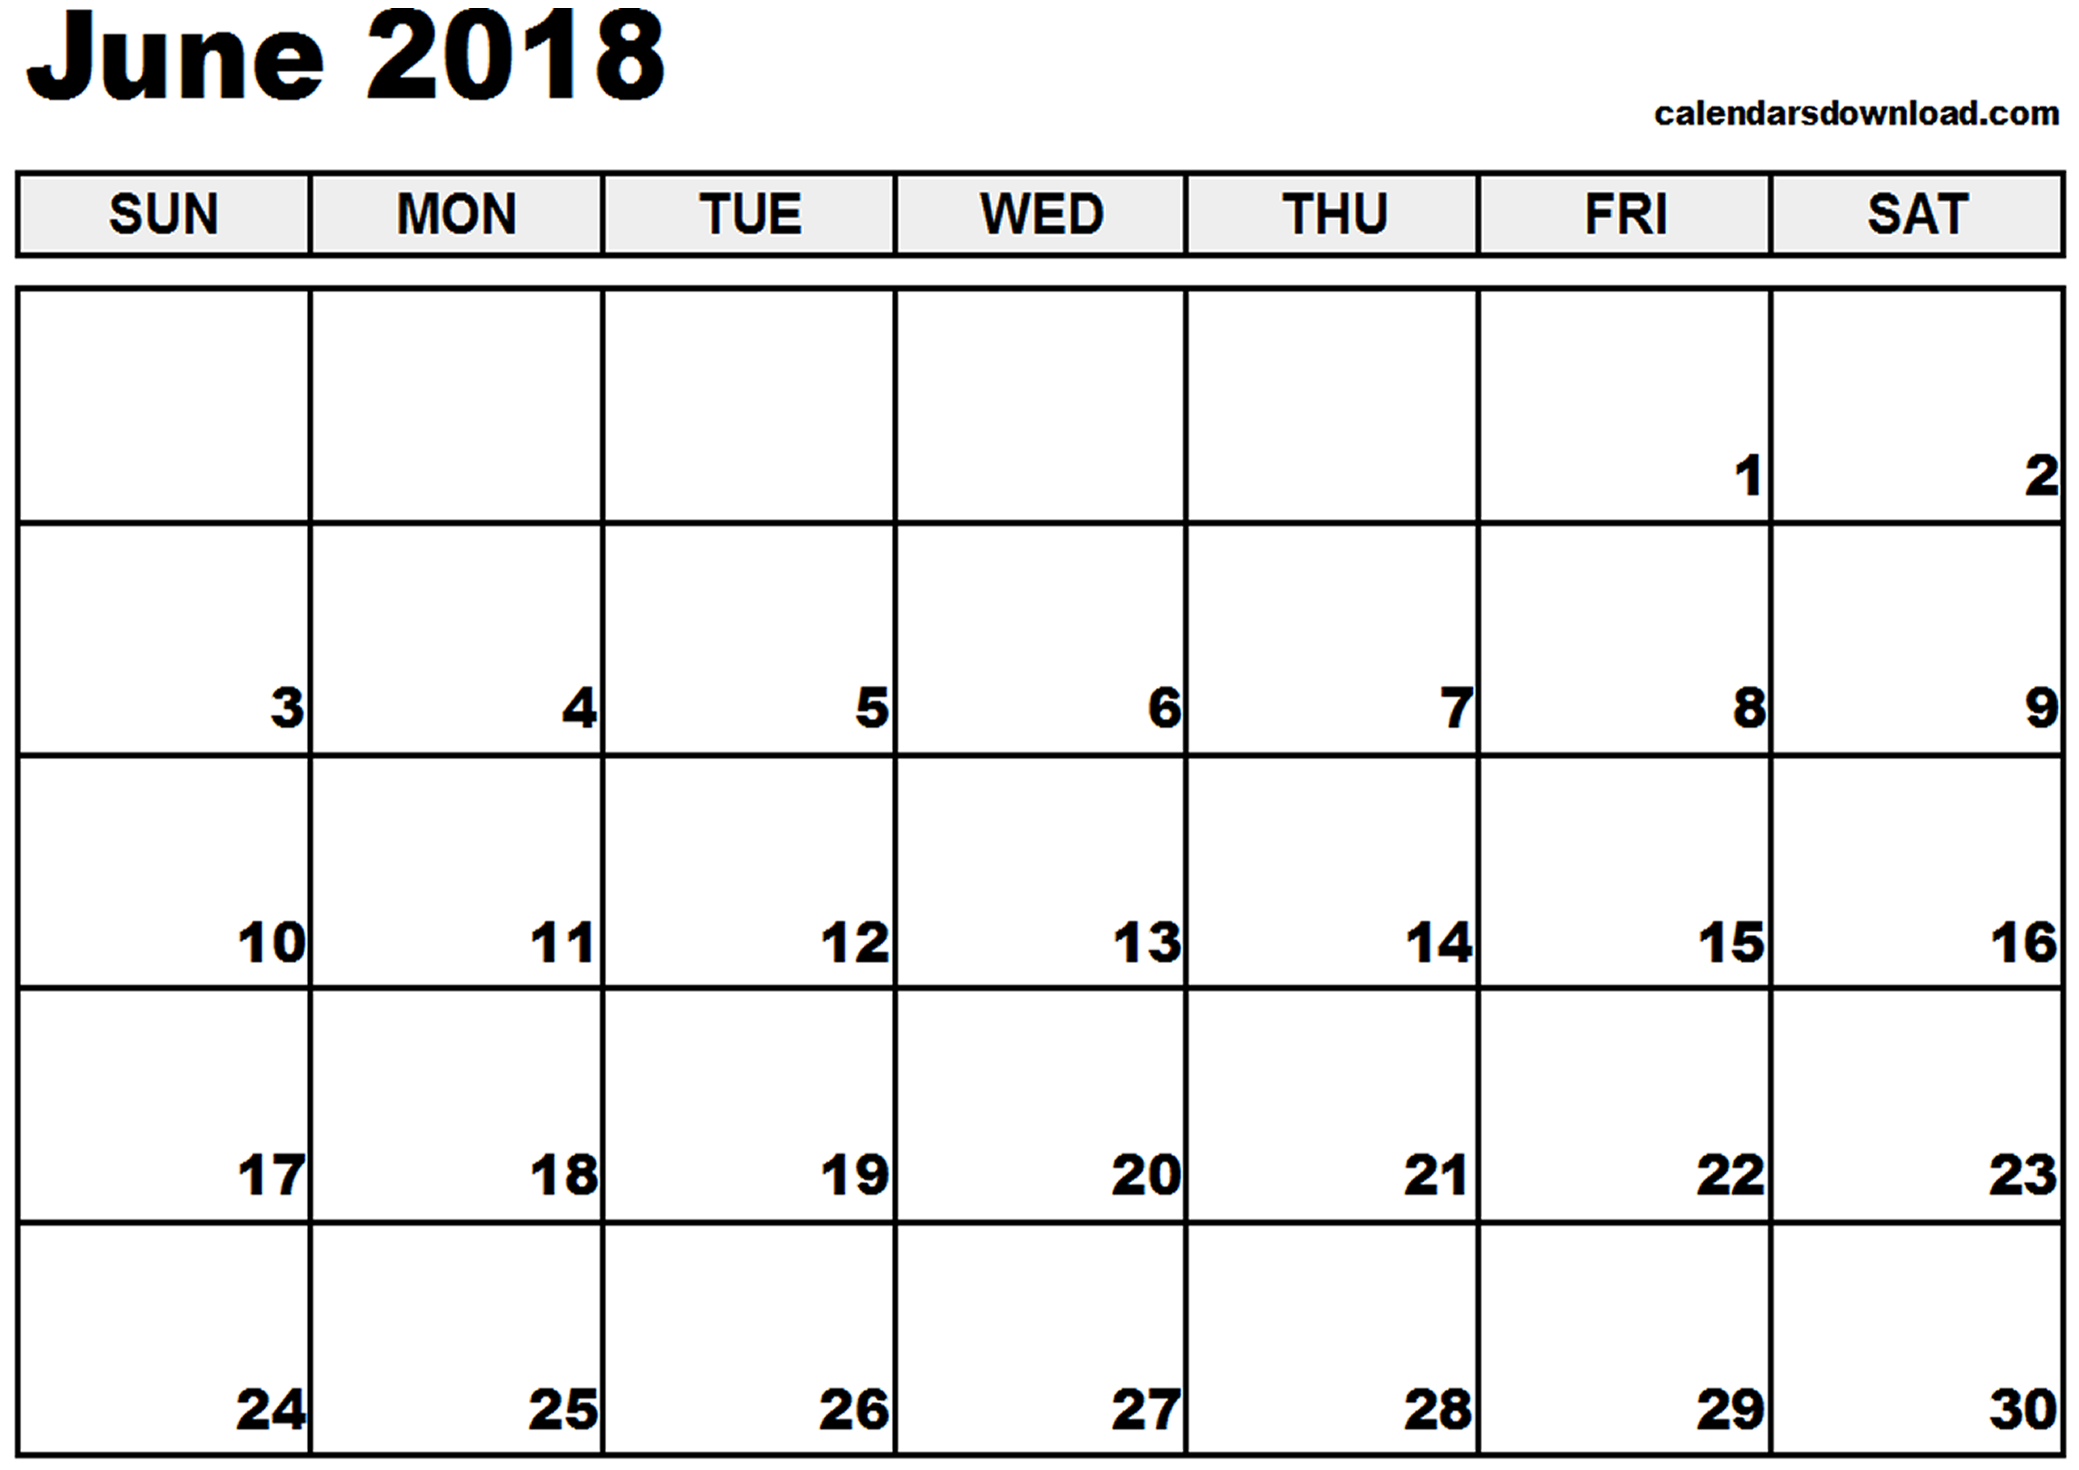 Jewish Calendar June 2018 With Holidays & Festivals